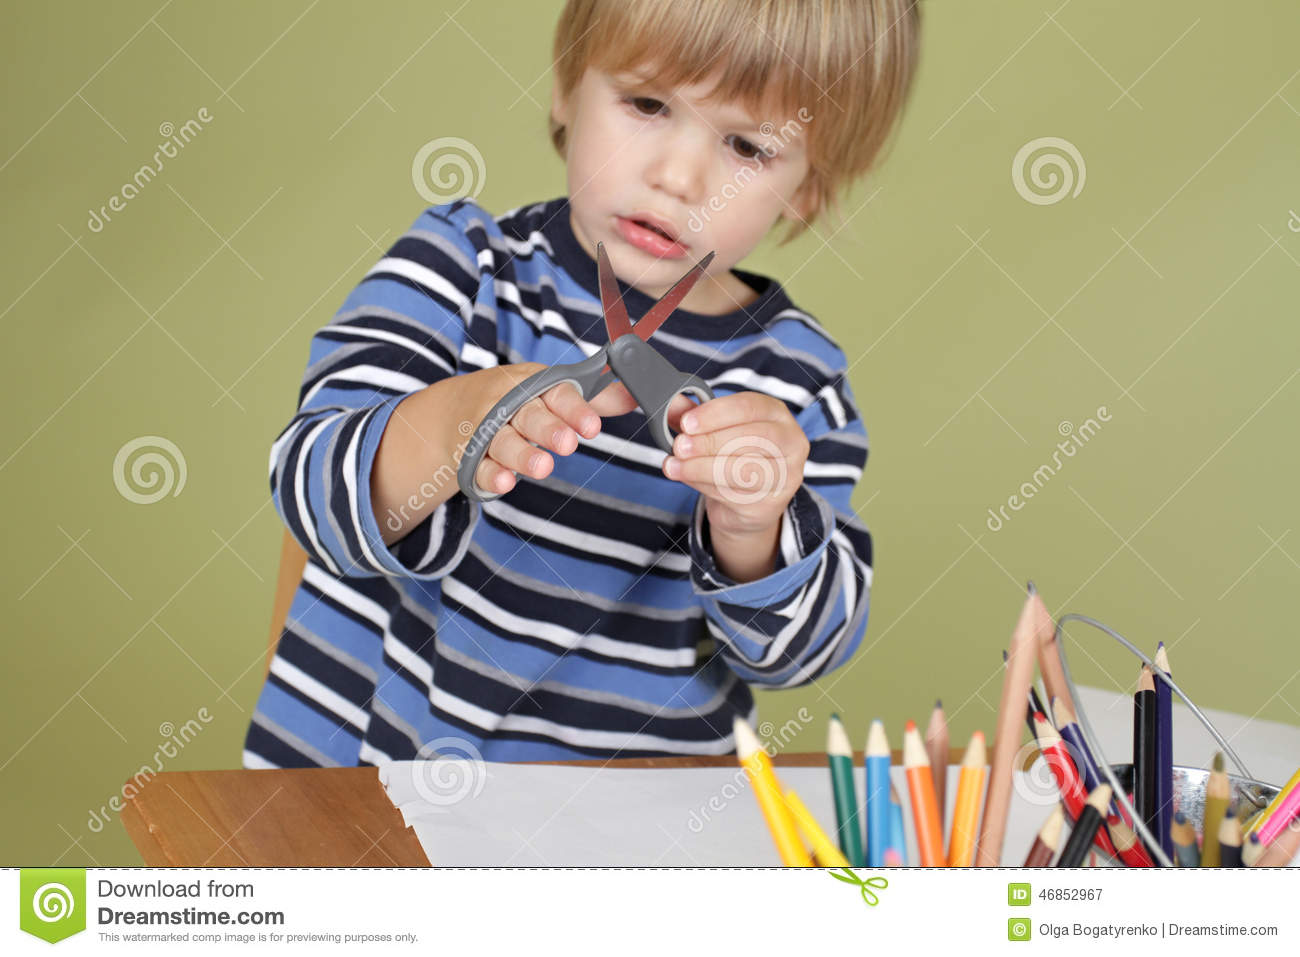 Kids Arts And Crafts Activity Child Learning To Cut With